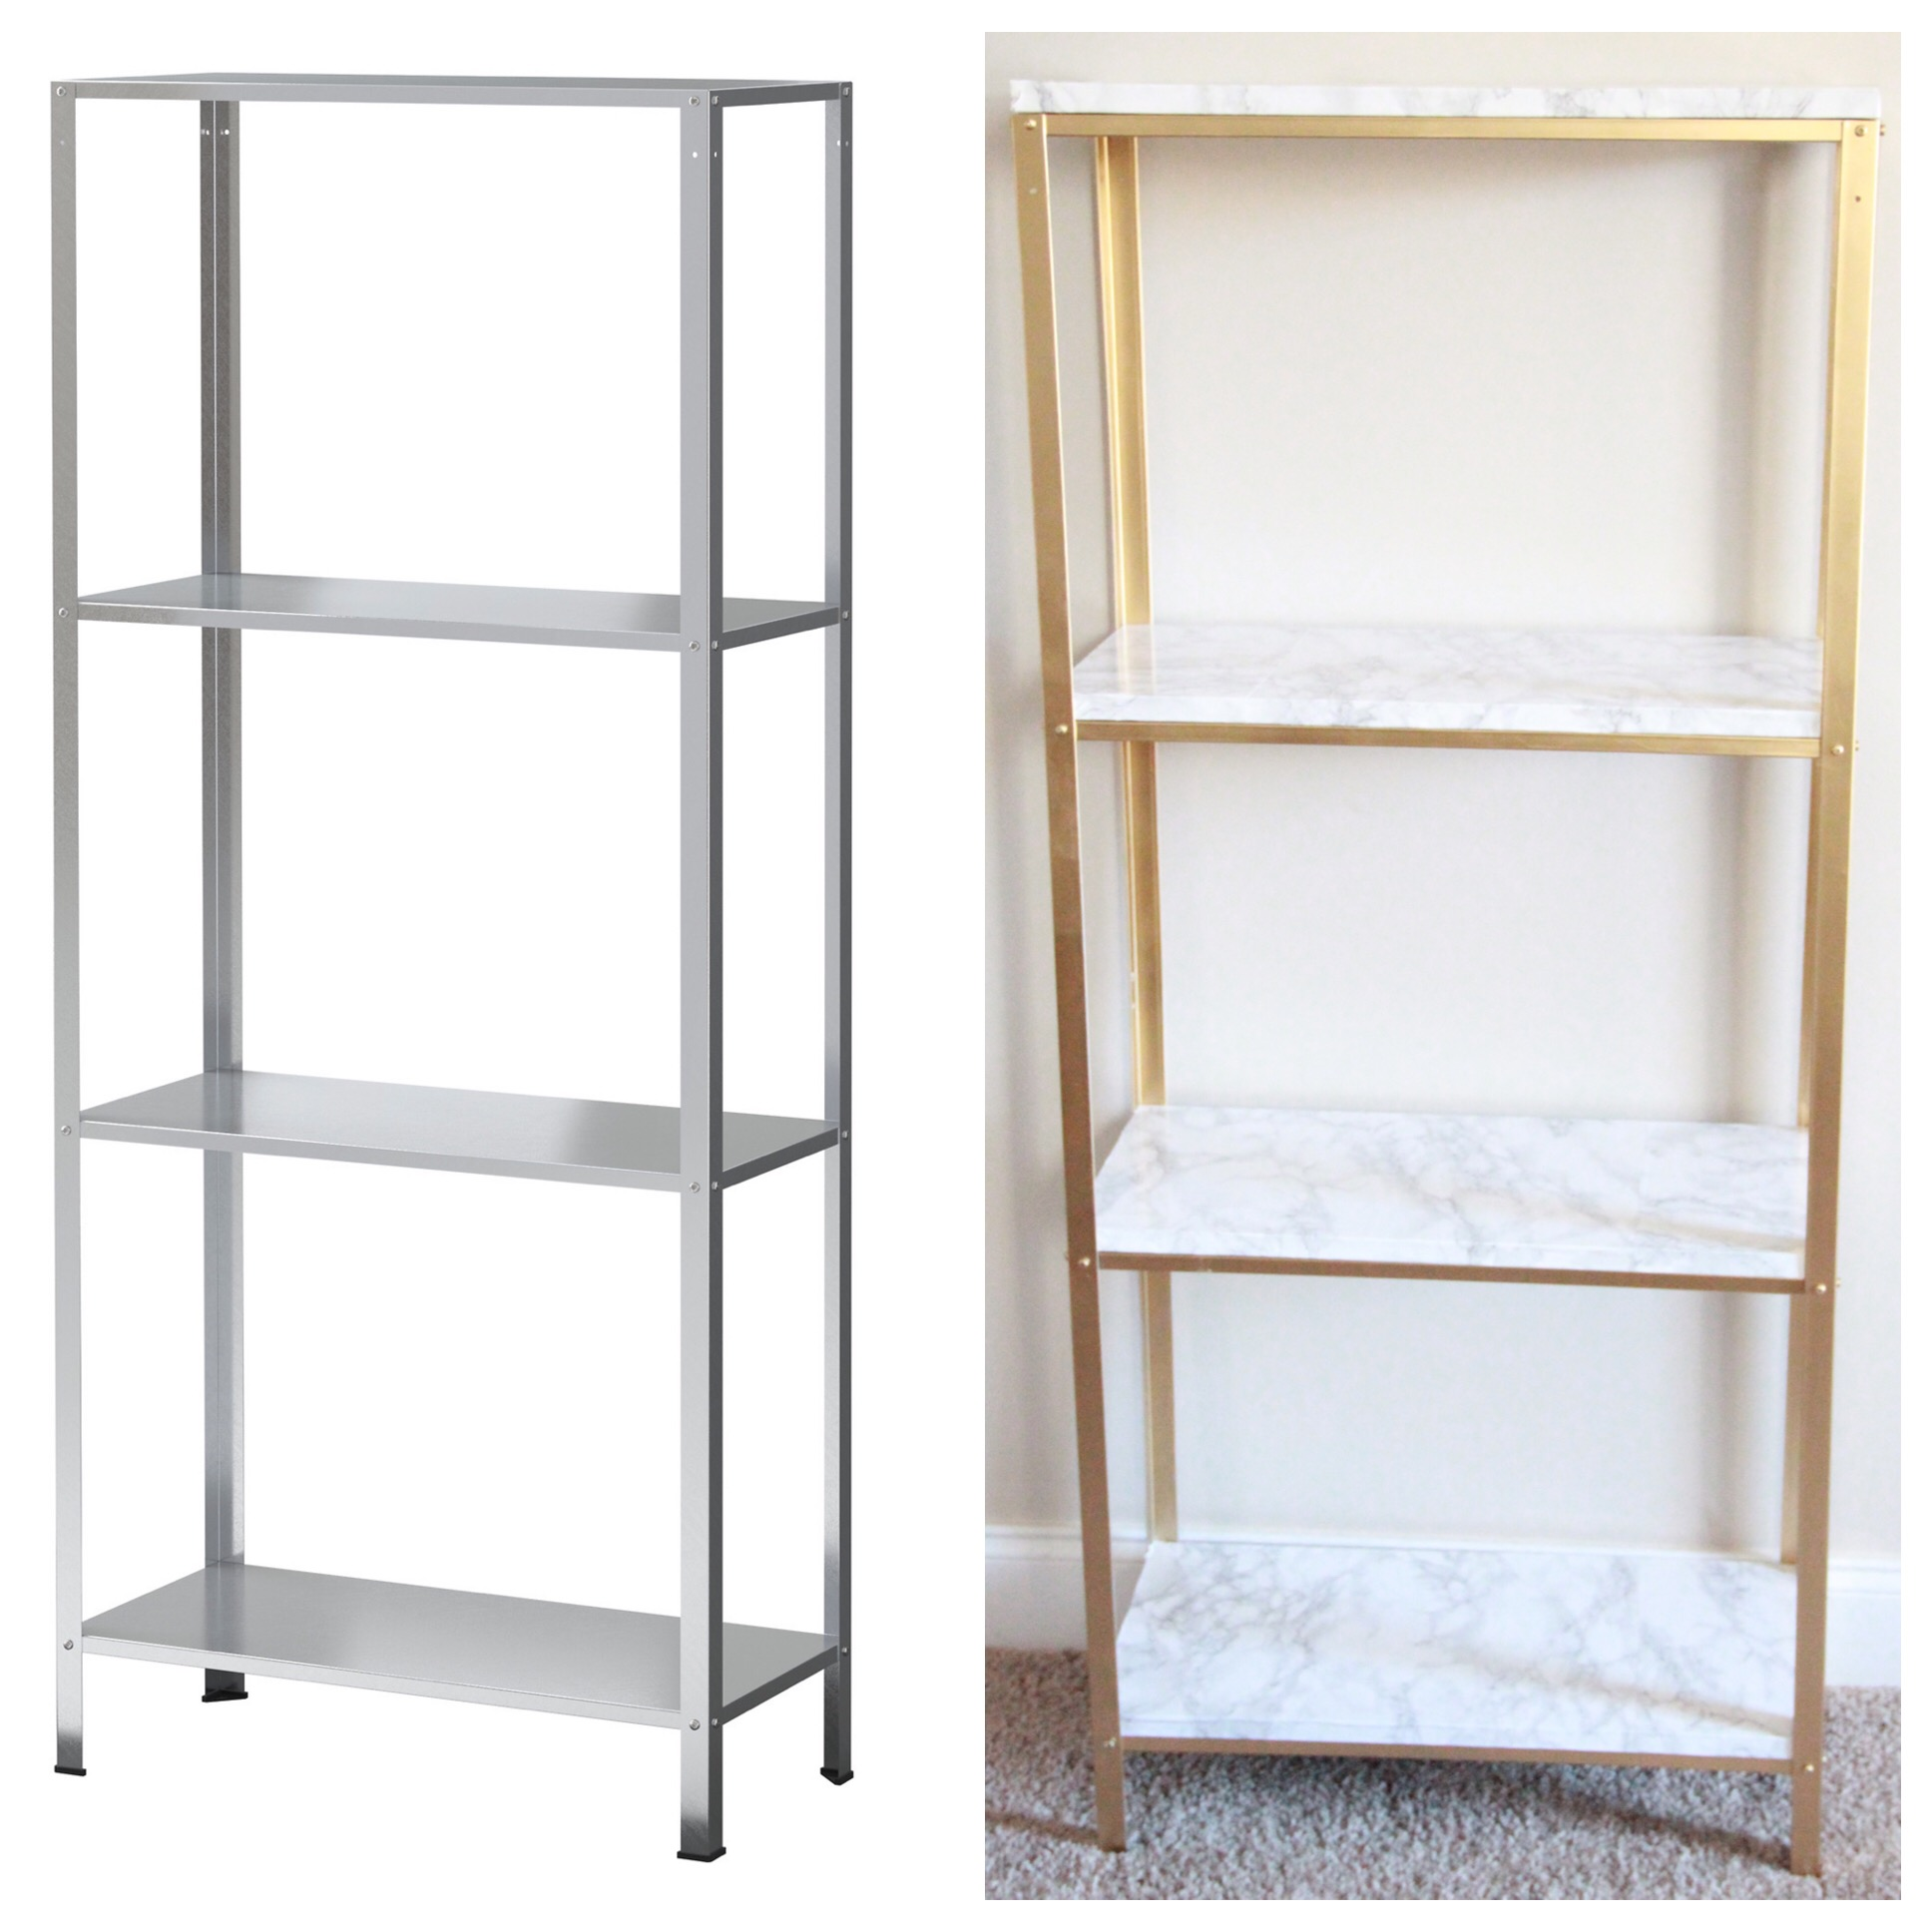 the best and easiest diy ikea hack